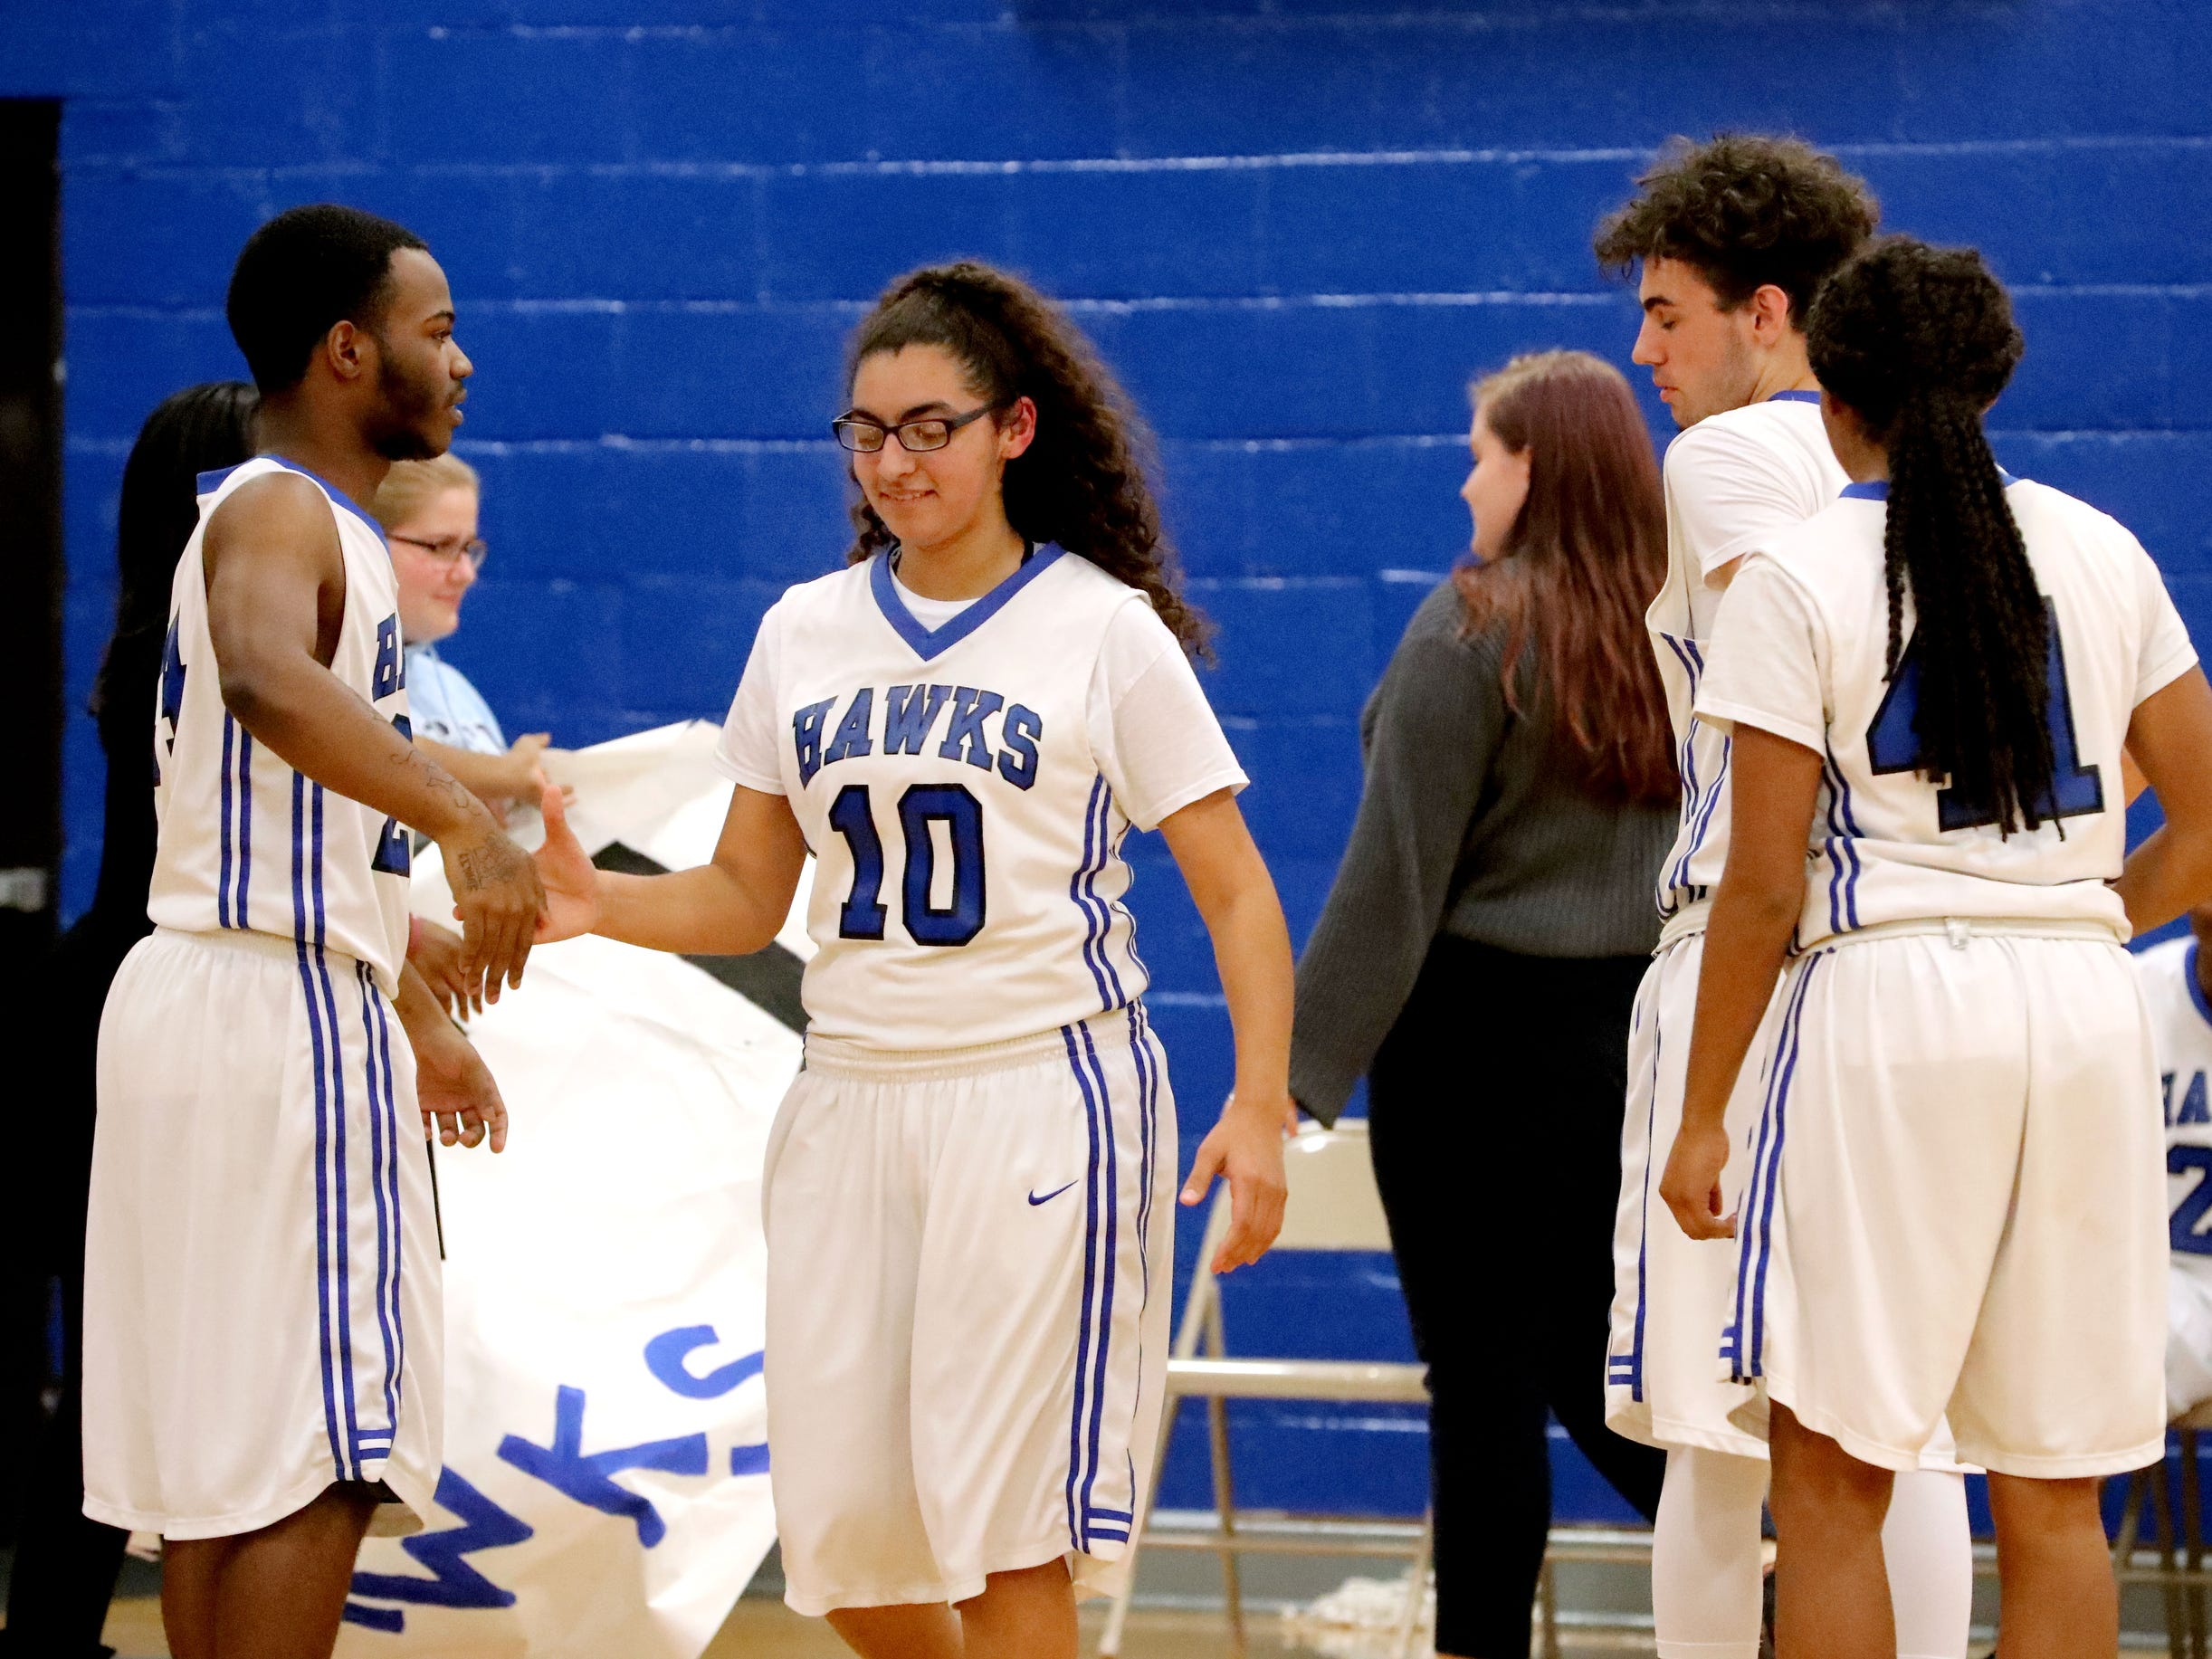 Holloway's Aaliyah Morales (10) is introduced before the game against Central and comes out and shake the hand of Holloway's Aundrell Hughes (2) on Thursday, Dec. 6, 2018.